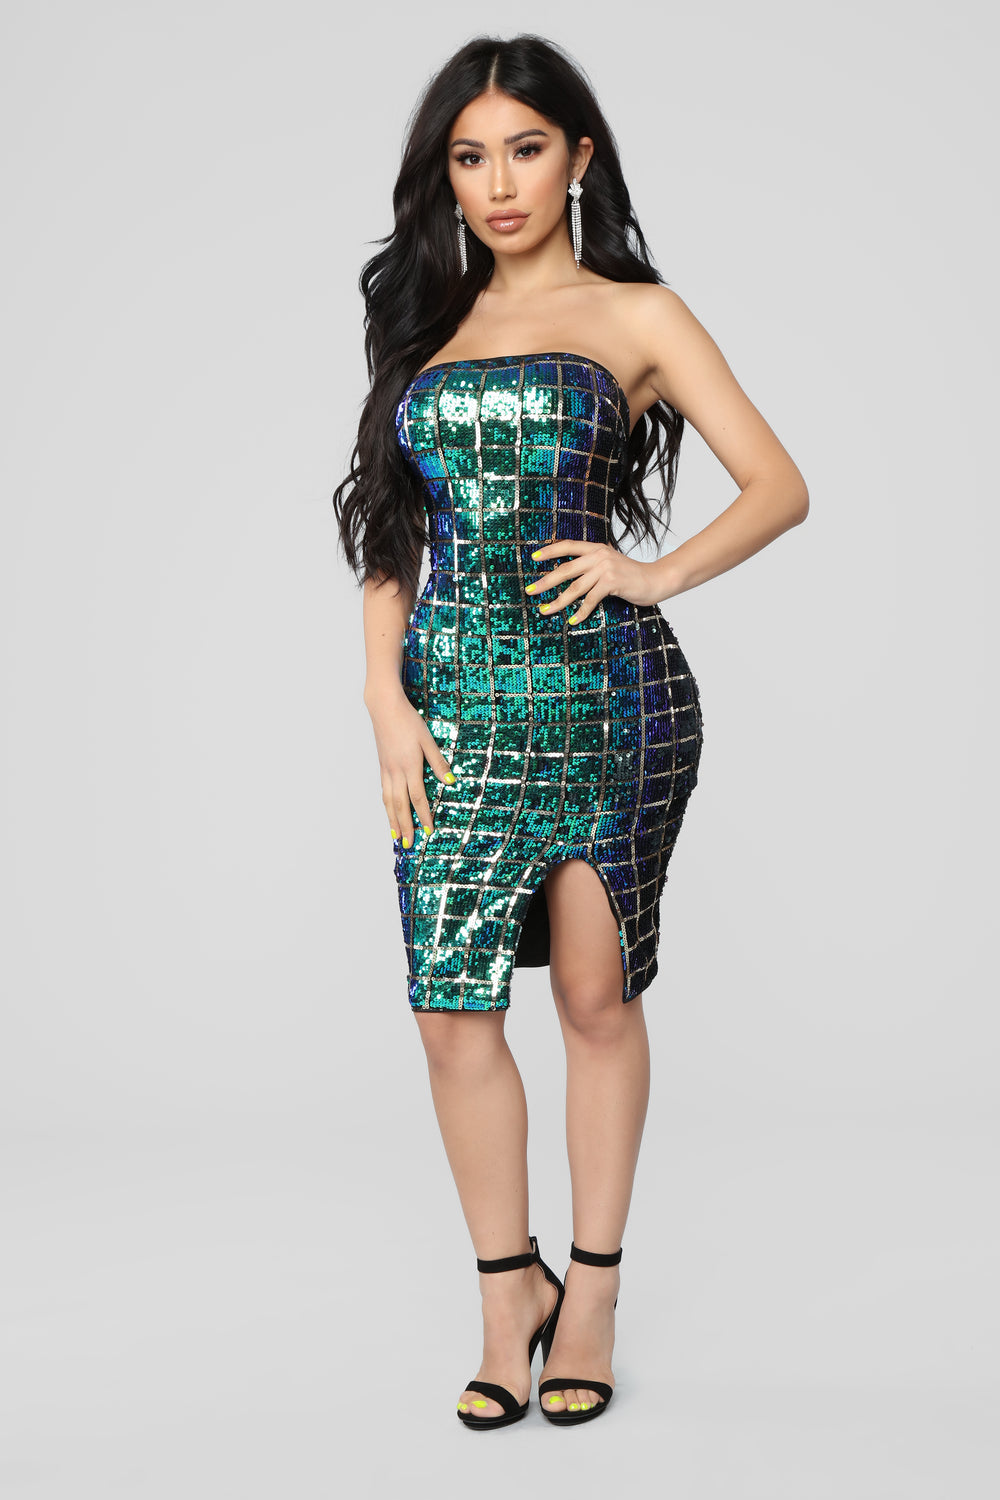 On My Block Sequin Dress - Green